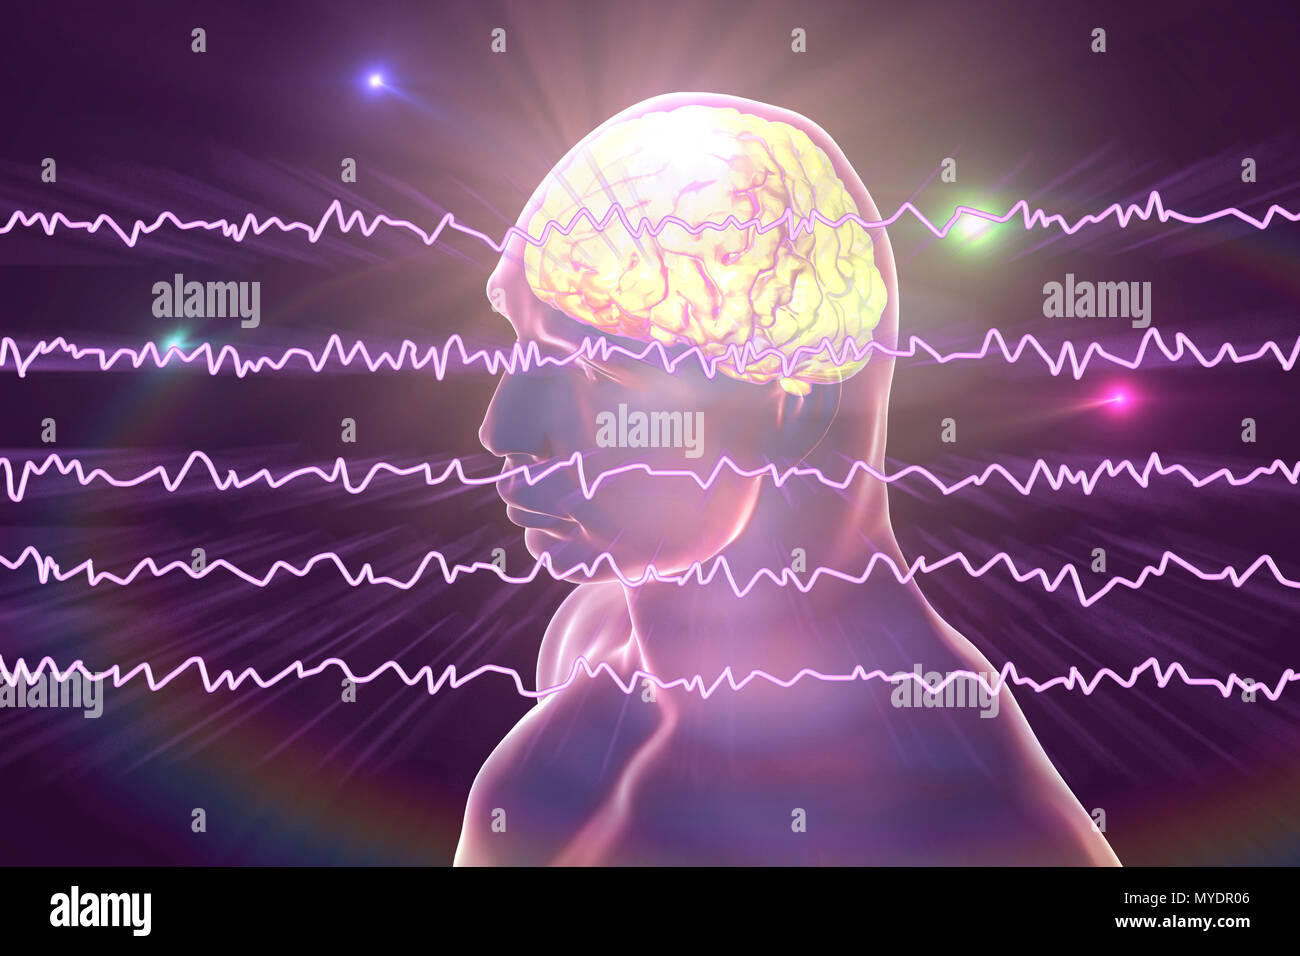 Brain and active brain waves, computer illustration. An electroencephalogram (EEG) measures electrical activity in the brain using electrodes attached to the scalp. Various disorders can be diagnosed by analysing EEG results. - Stock Image